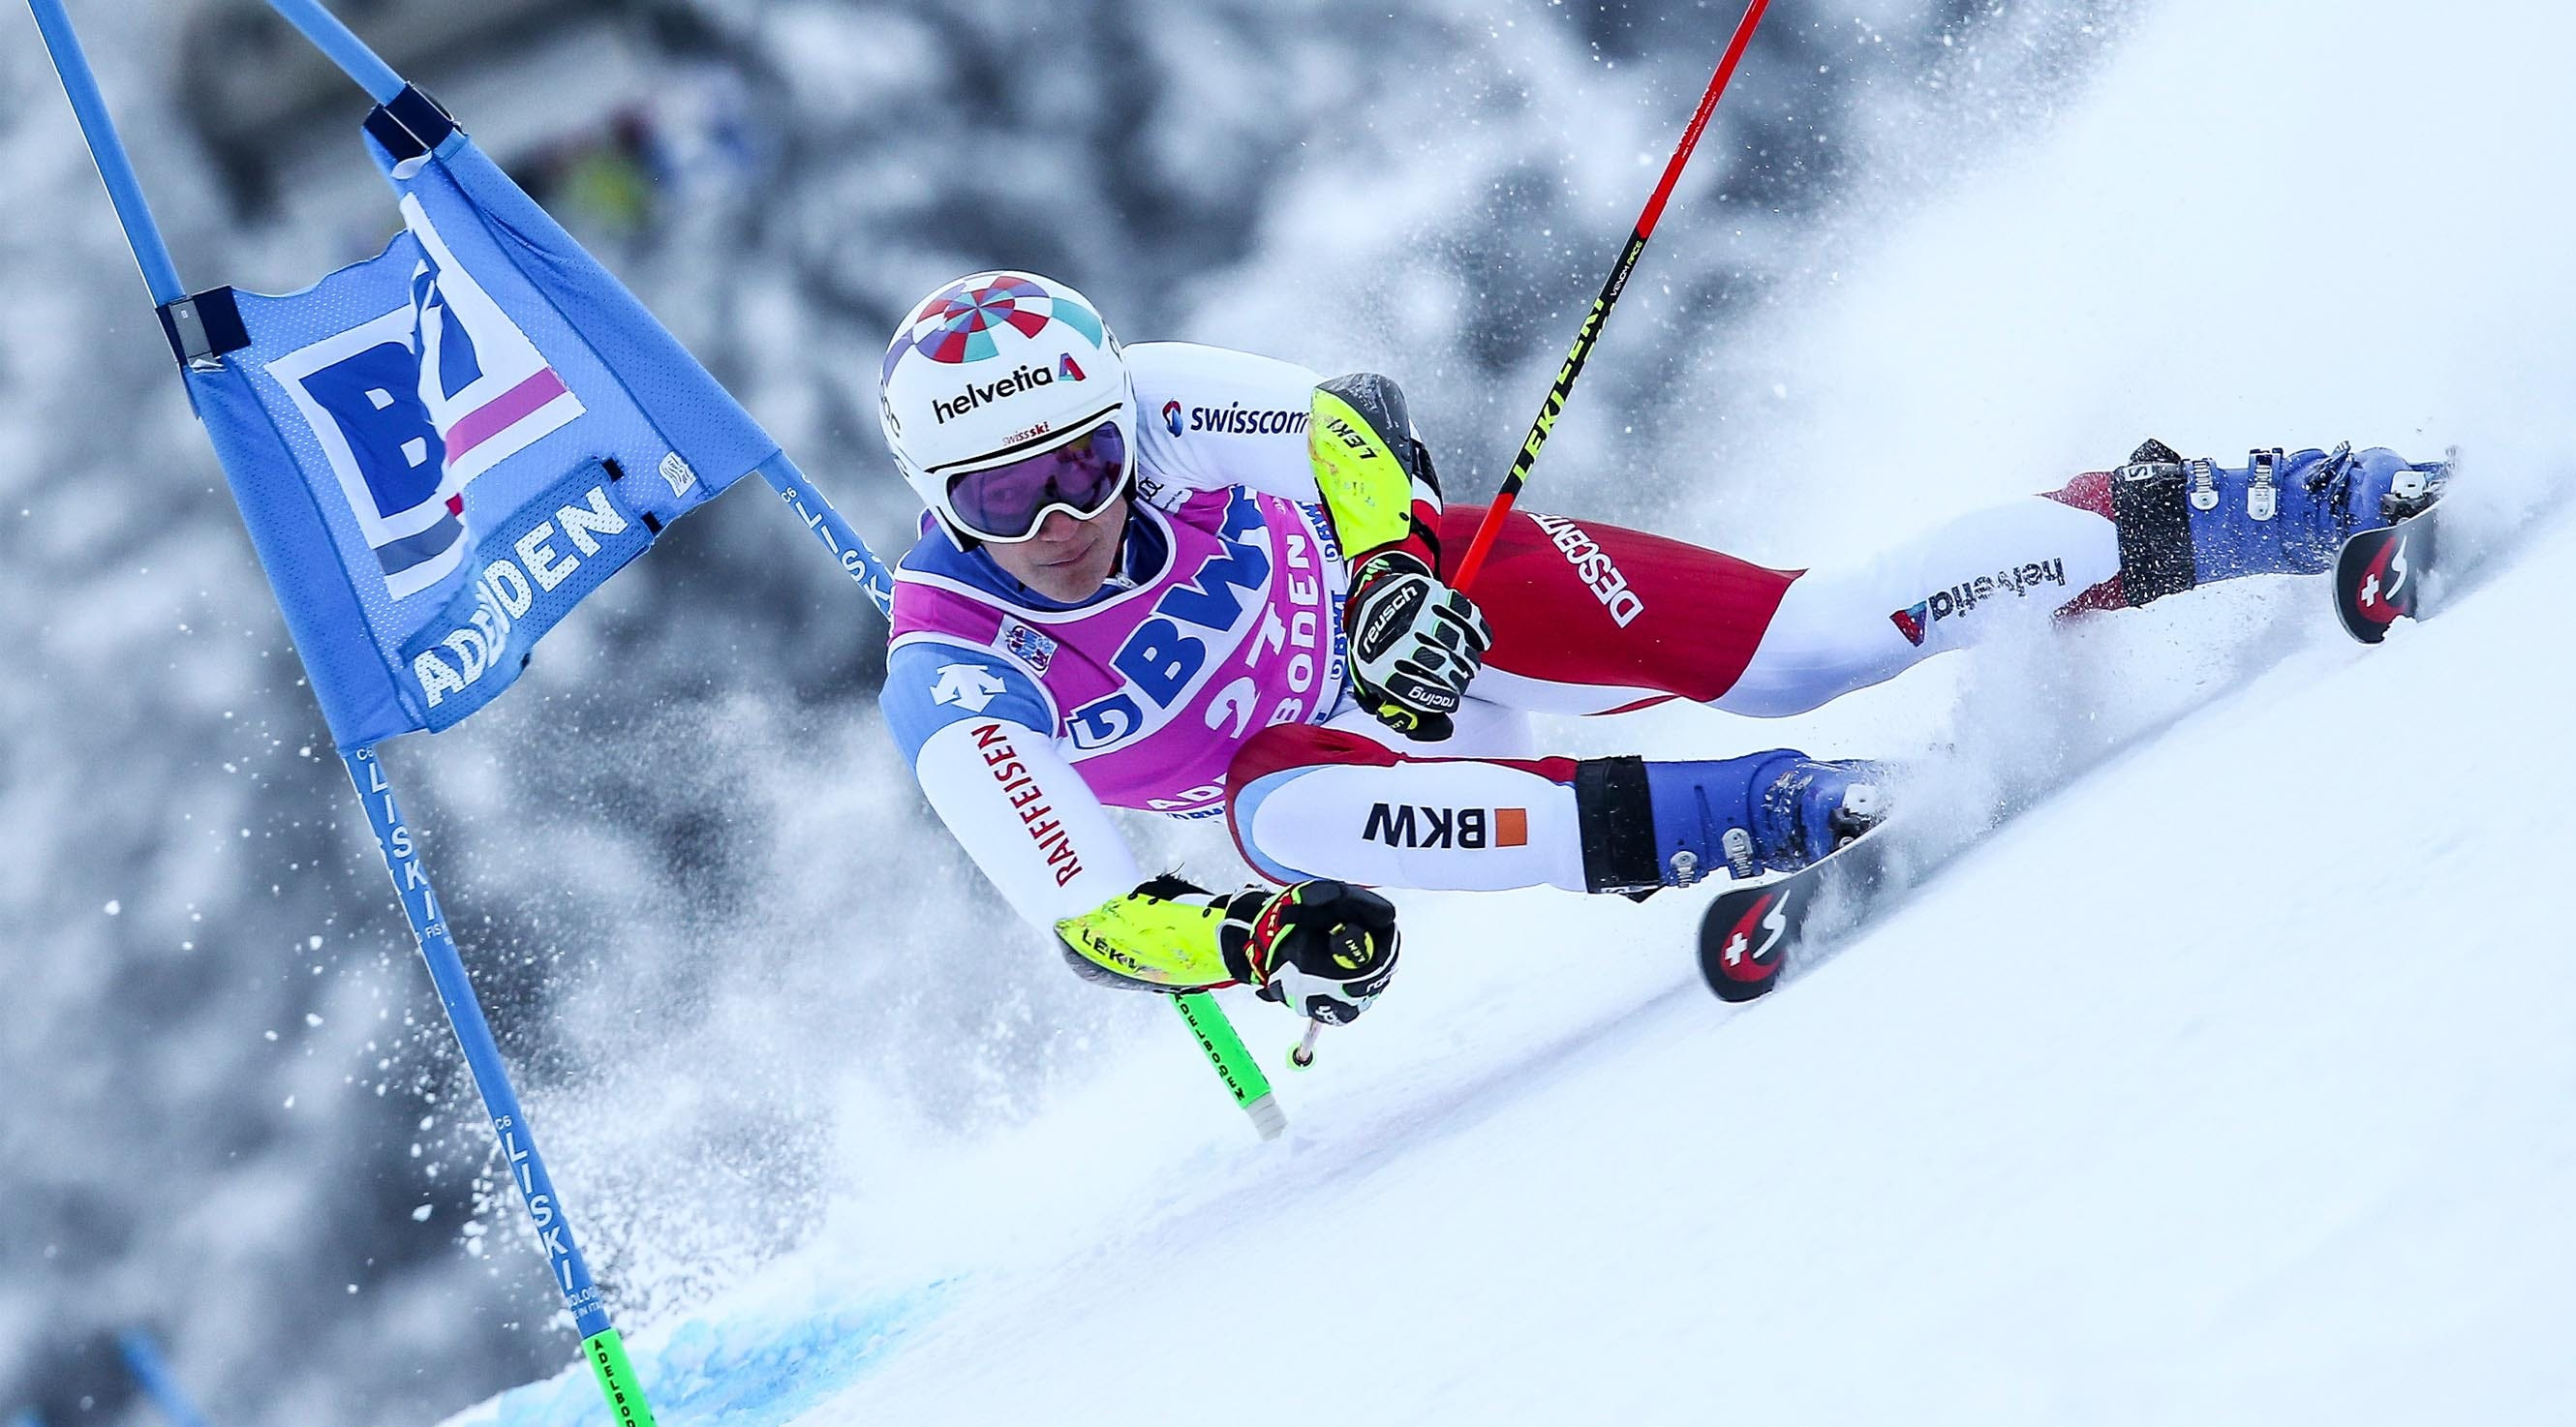 Marco Odermatt emotionally moved on his home turf in Adelboden